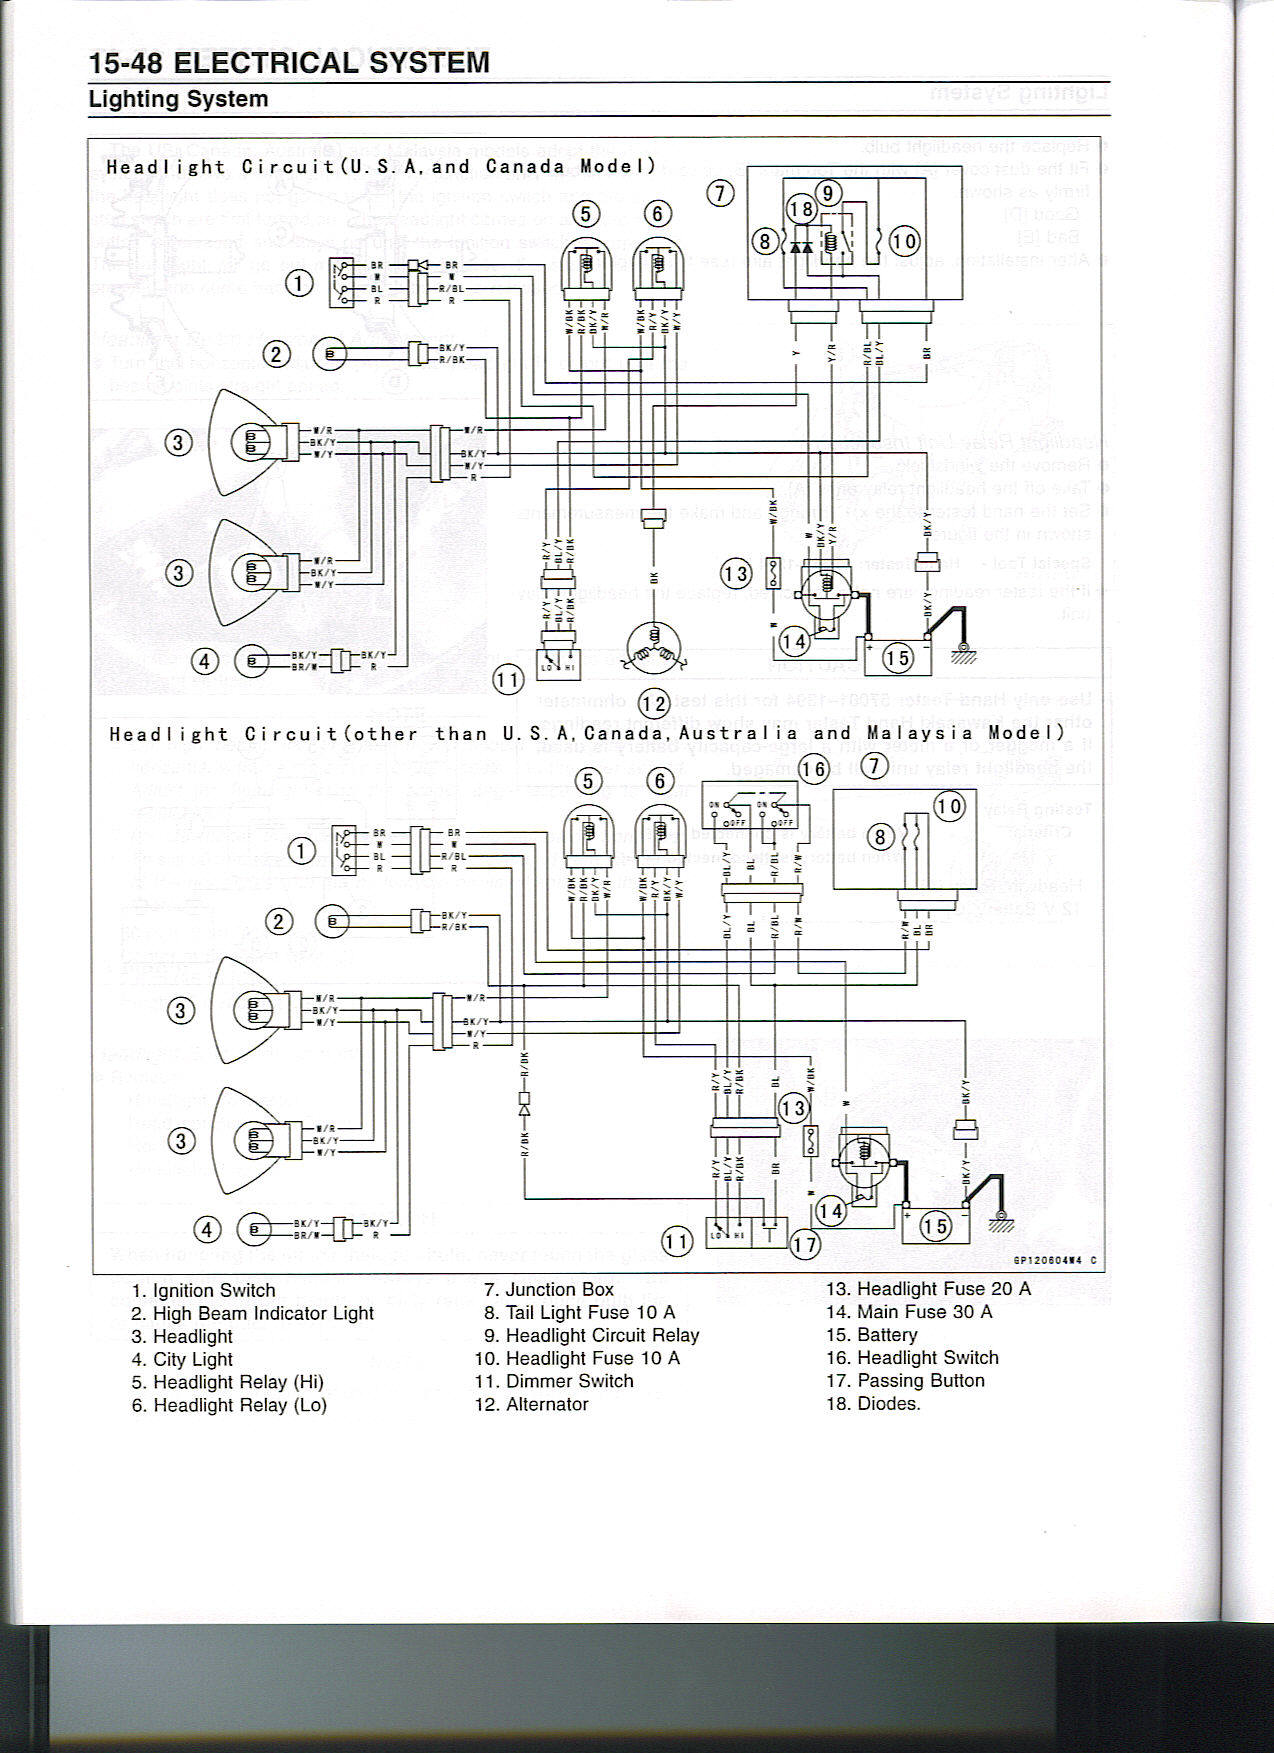 Honda Cbr Headlight Relays Wiring Diagram | Wiring Liry on